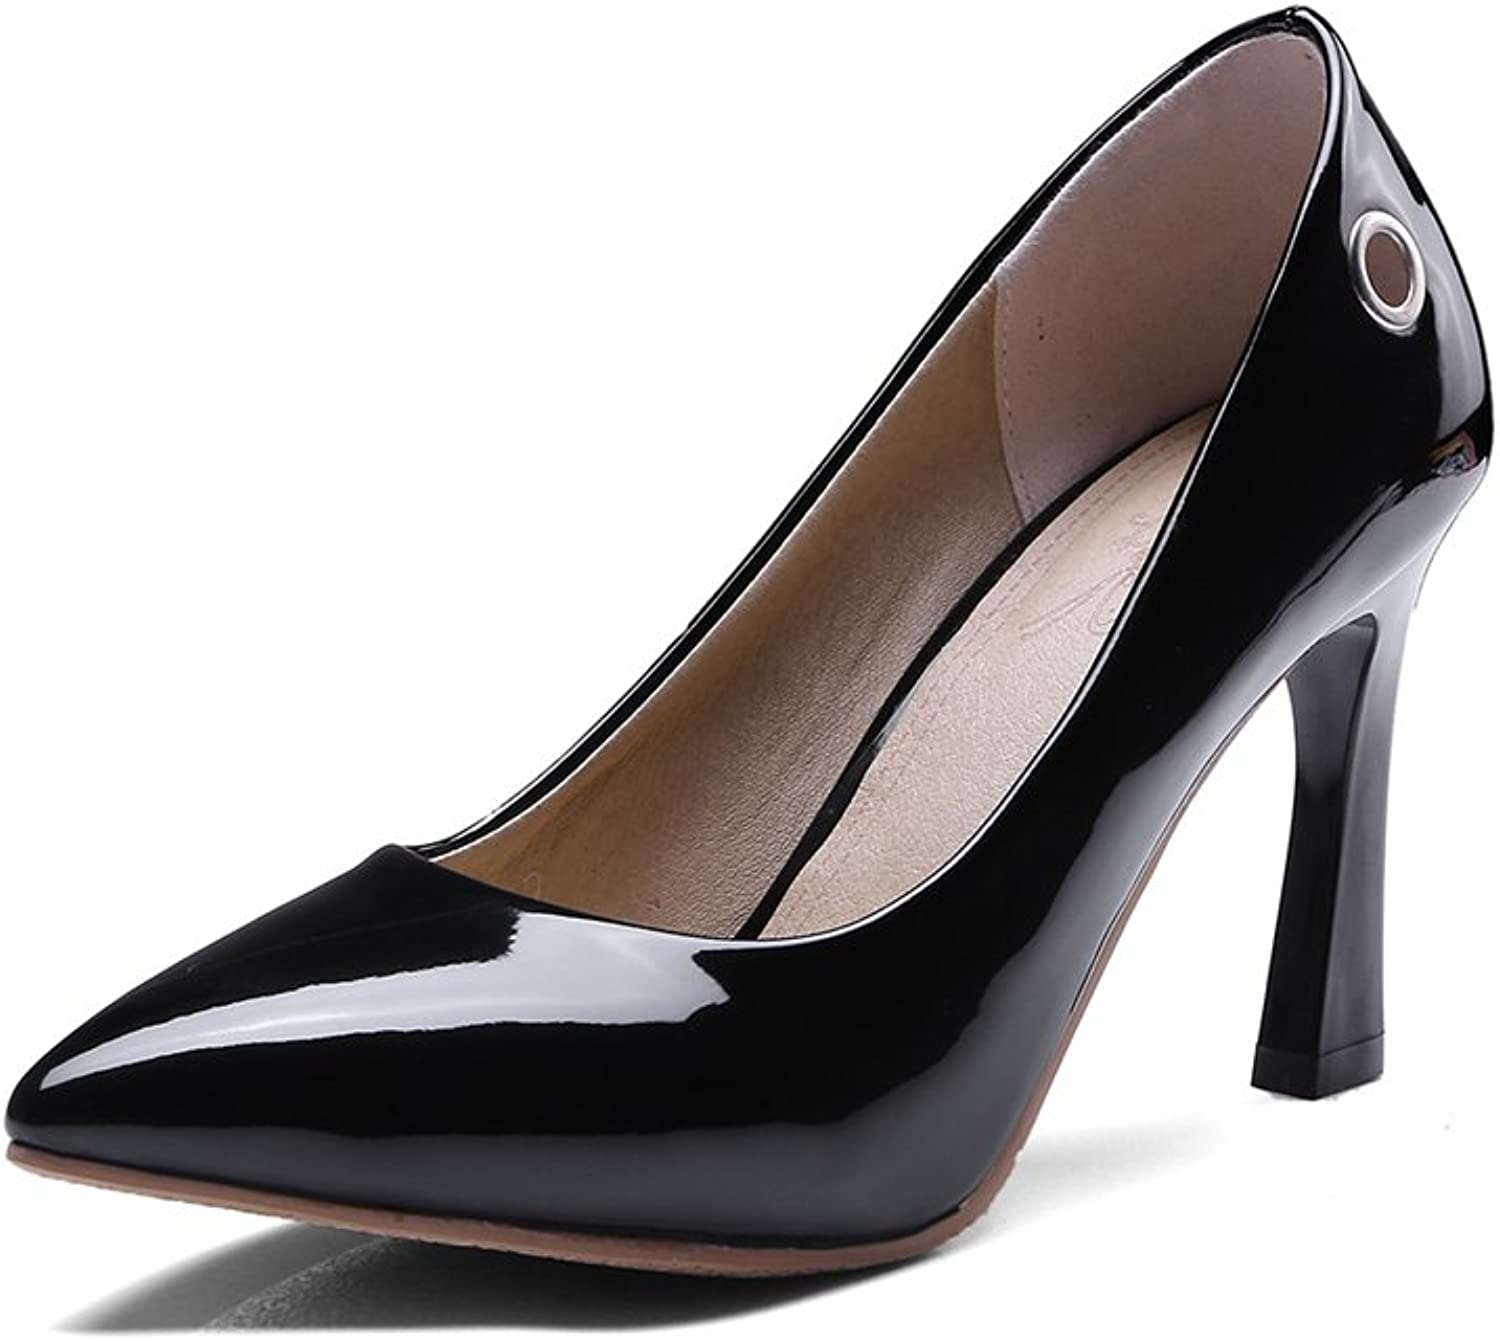 Coloing Womens Kitten Mid Heel Pump Ladies Pointed Toe Basic Office Work shoes Classic Leather Slip On Low Heel shoes